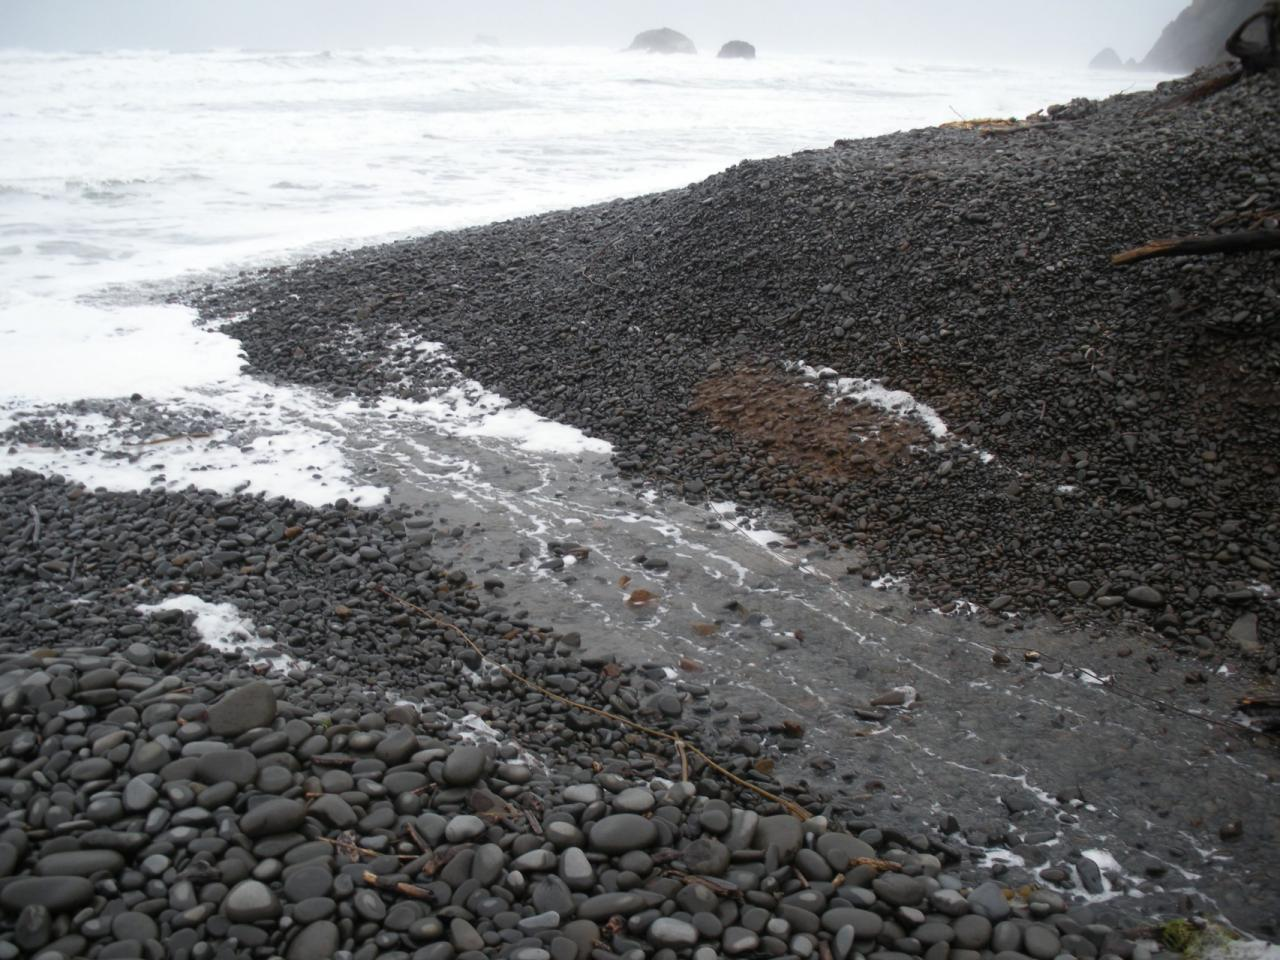 The King Tide eroded the mouth of a small stream coming out onto Cove Beach